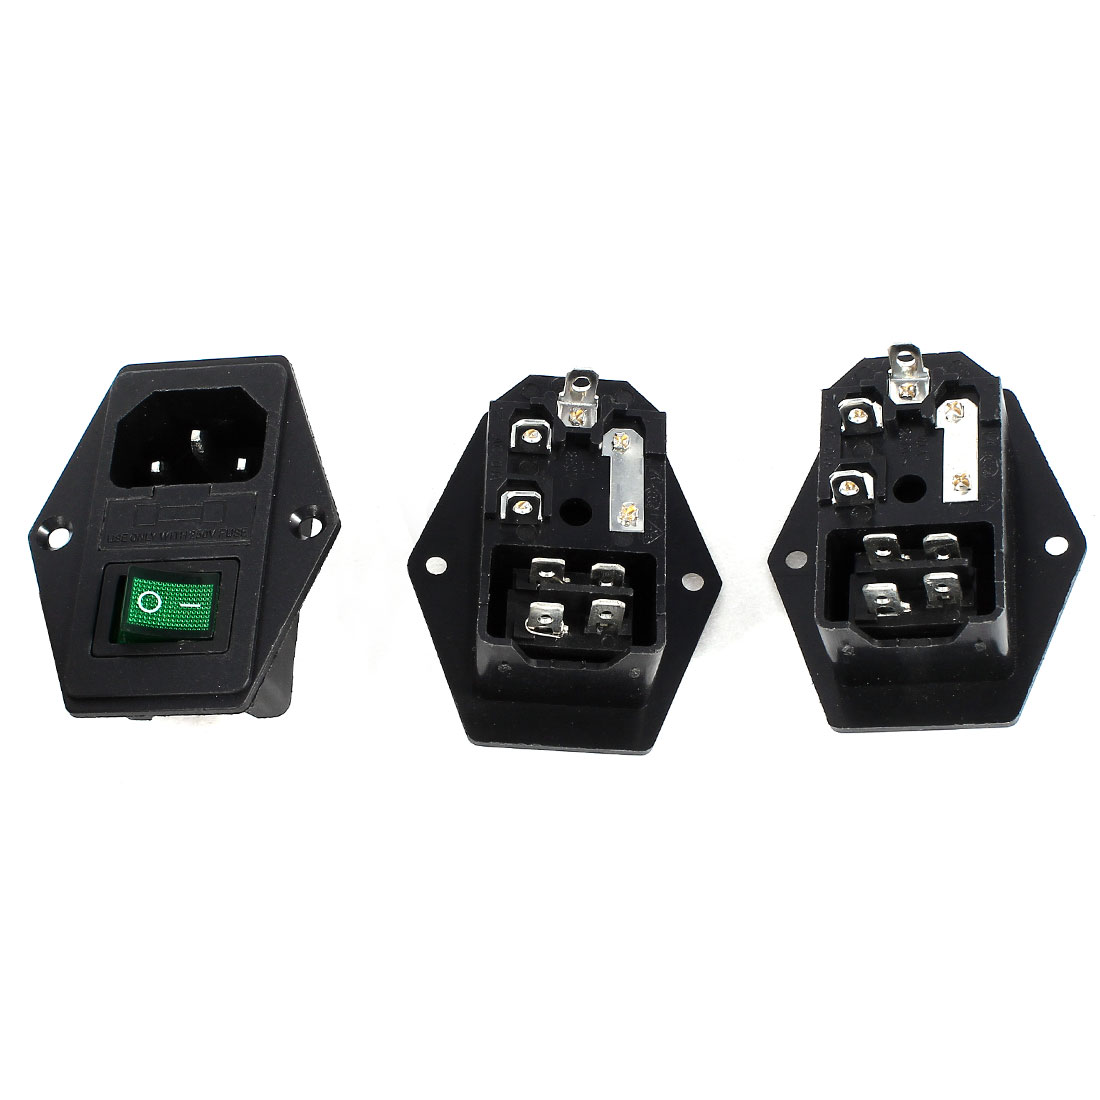 3 Pcs 4Pin DPST Green Light Rocker Switch IEC320 C14 Inlet Power Socket w Fuse AC 250V 5A